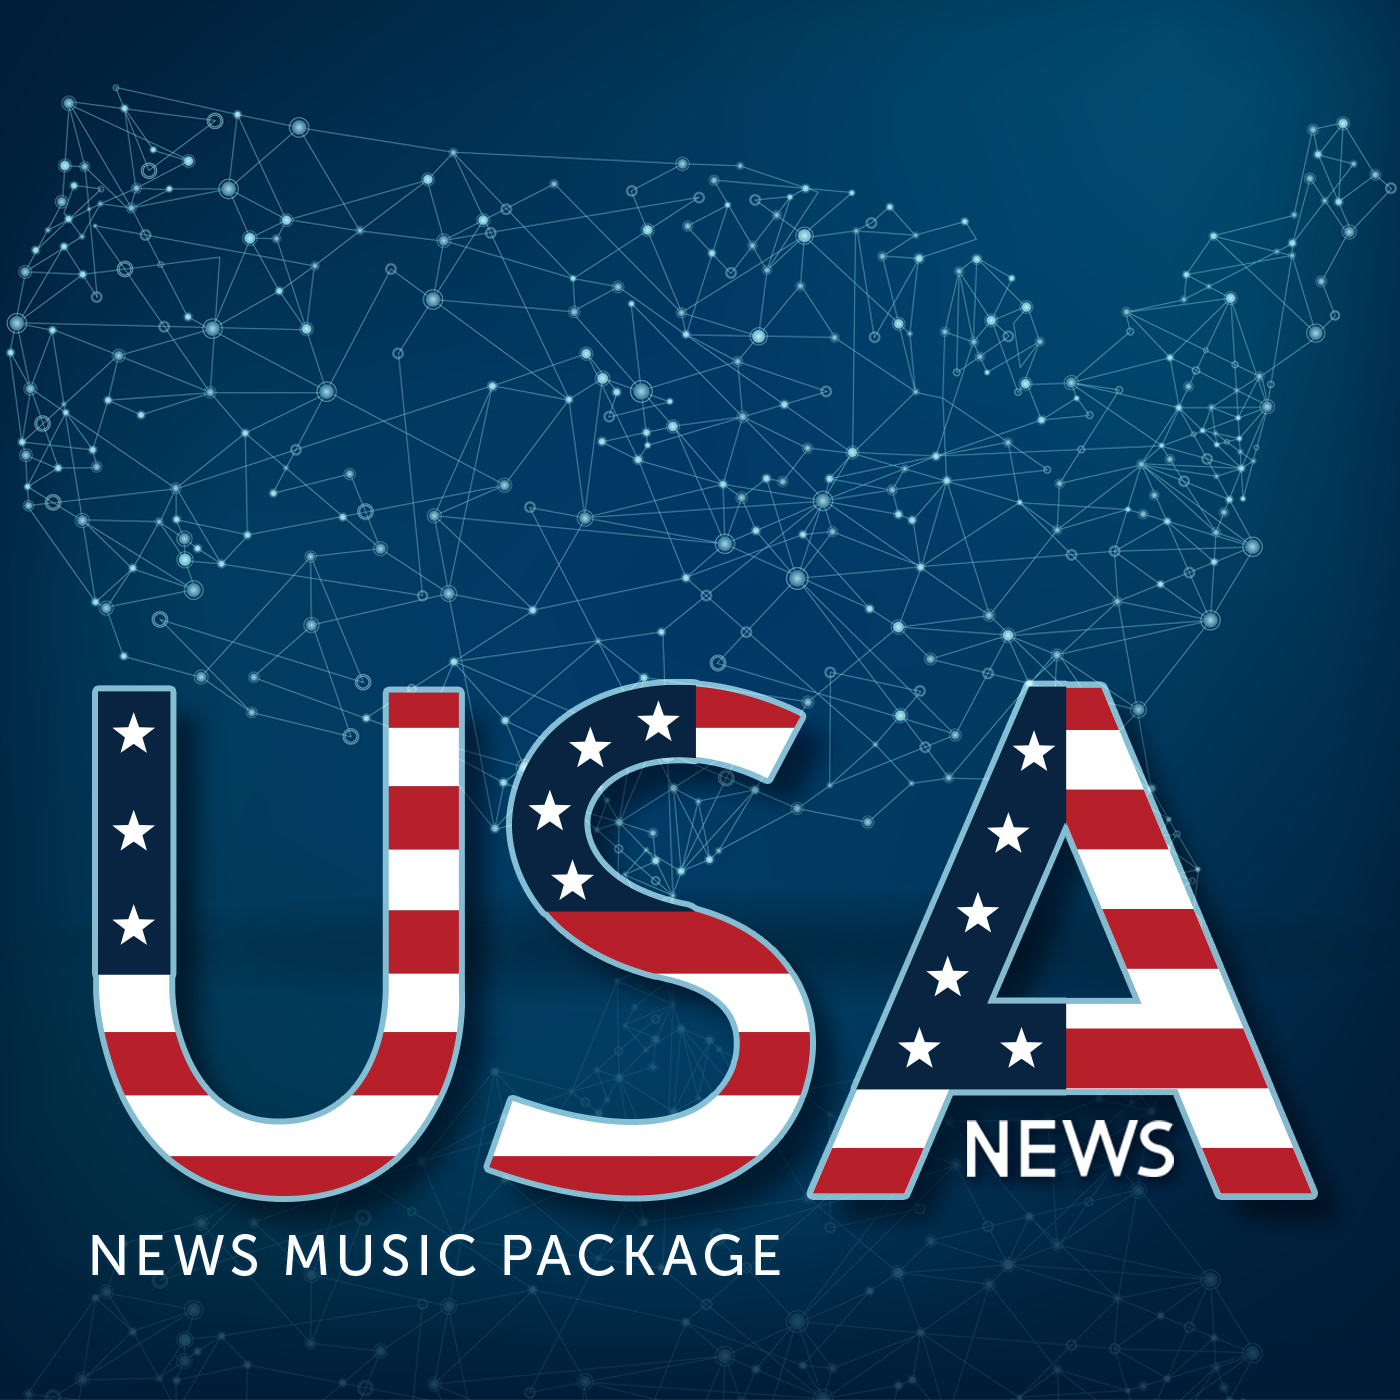 USA News Music Package